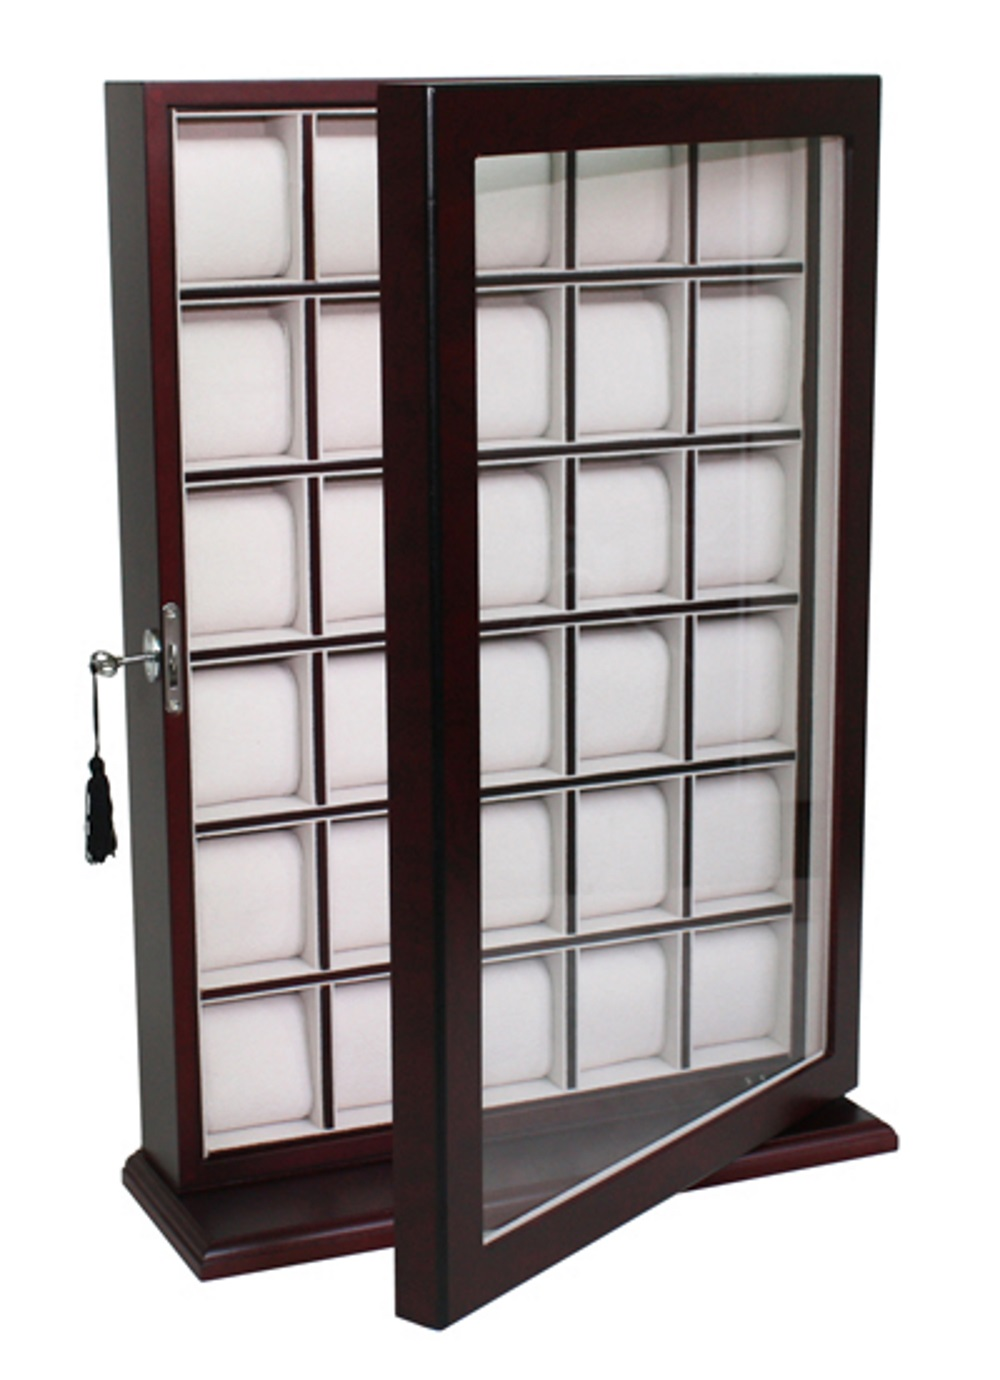 30 WATCH CHERRY WOOD DISPLAY WALL CASE STAND ROSEWOOD ...